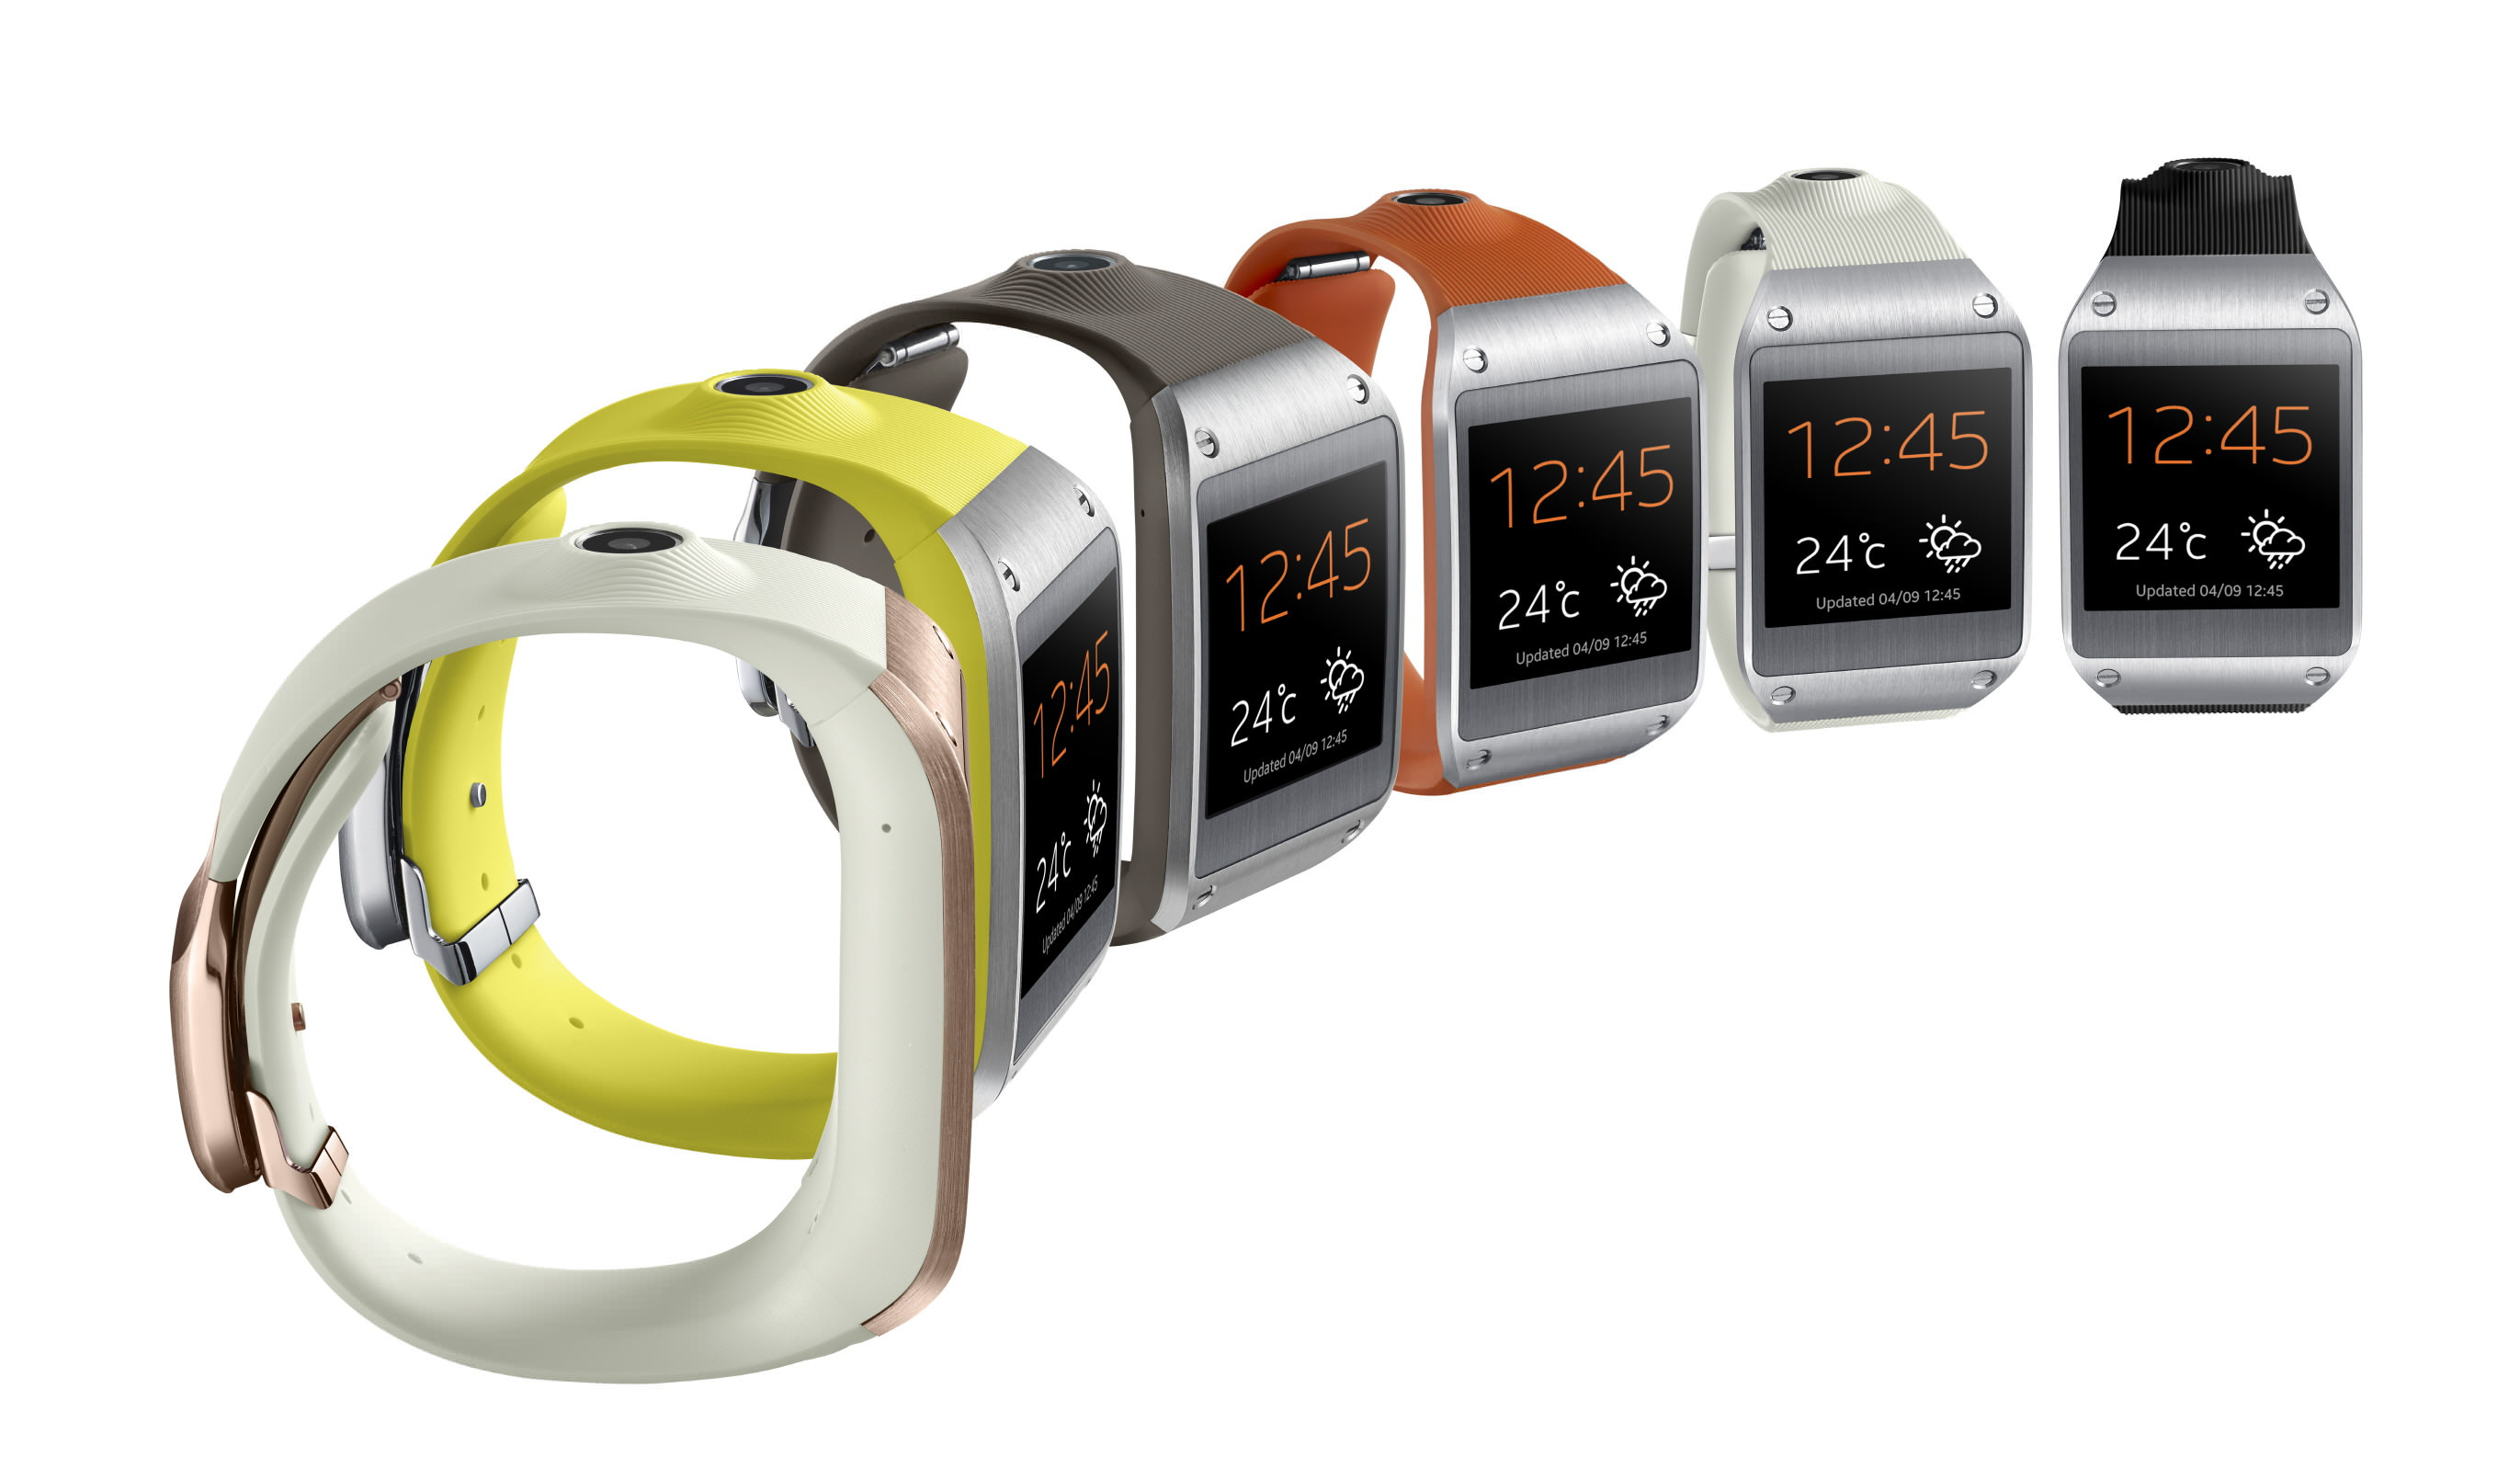 galaxy-gear-more-phones